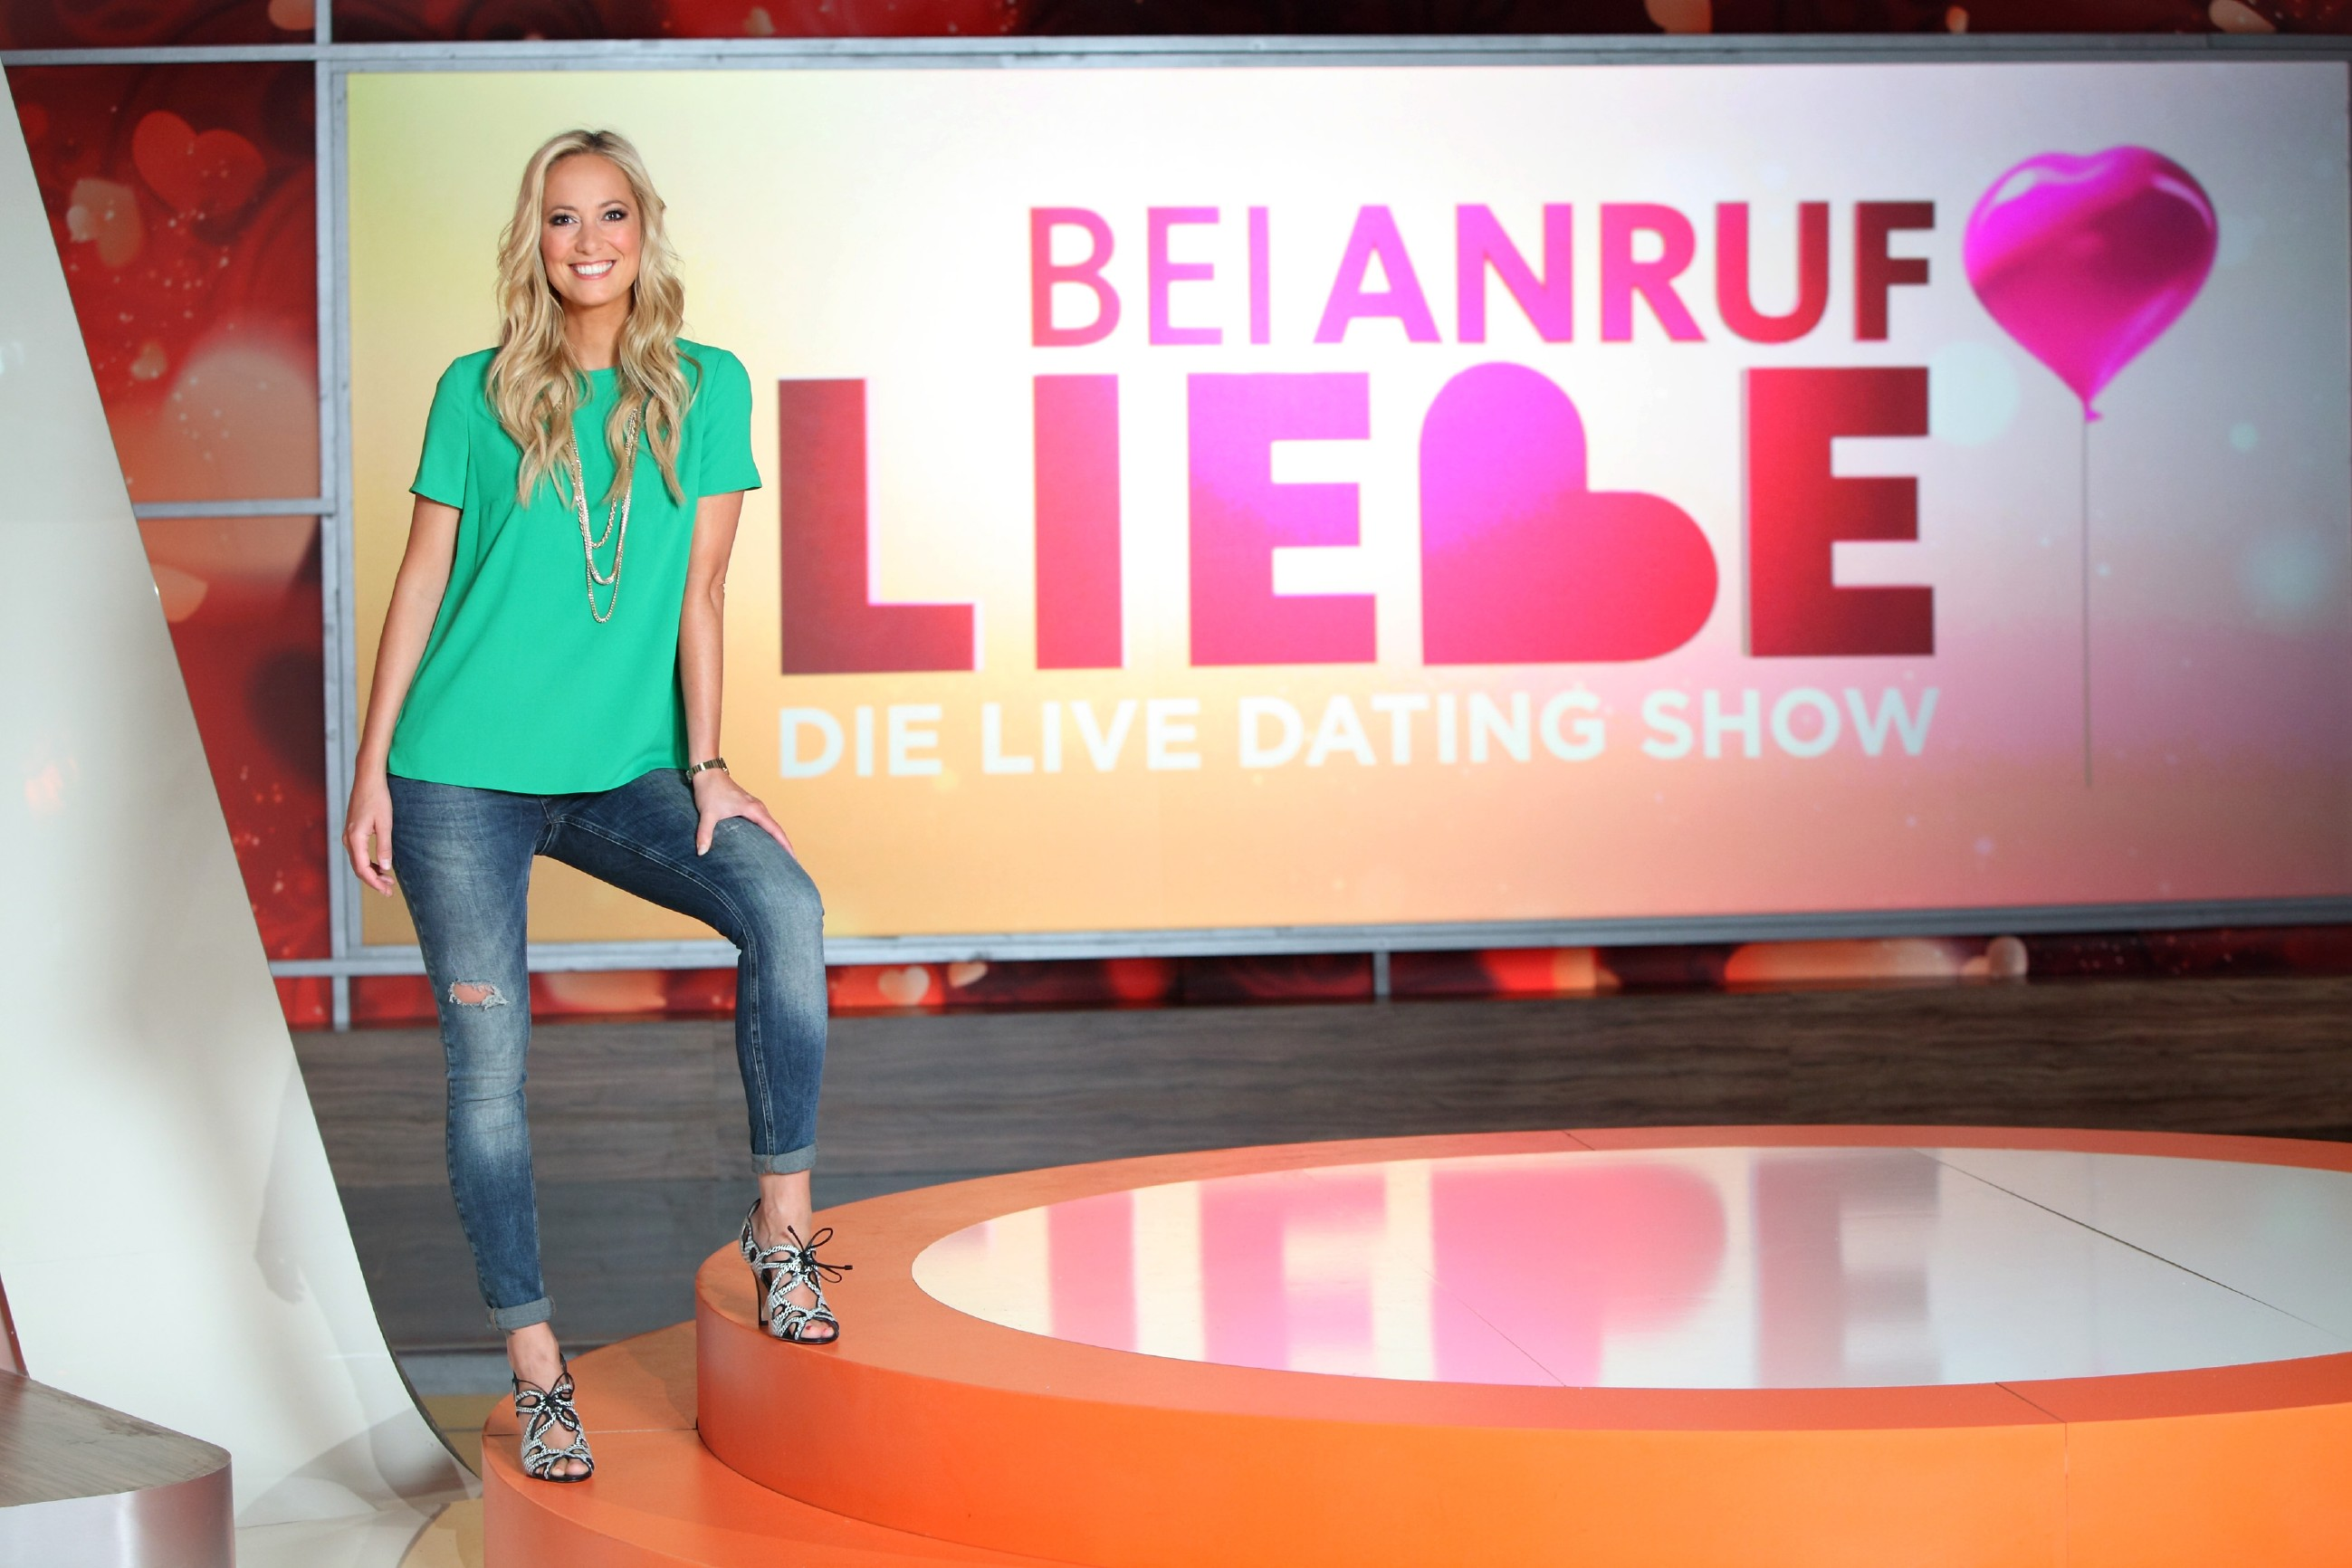 from Leon dating rtl show